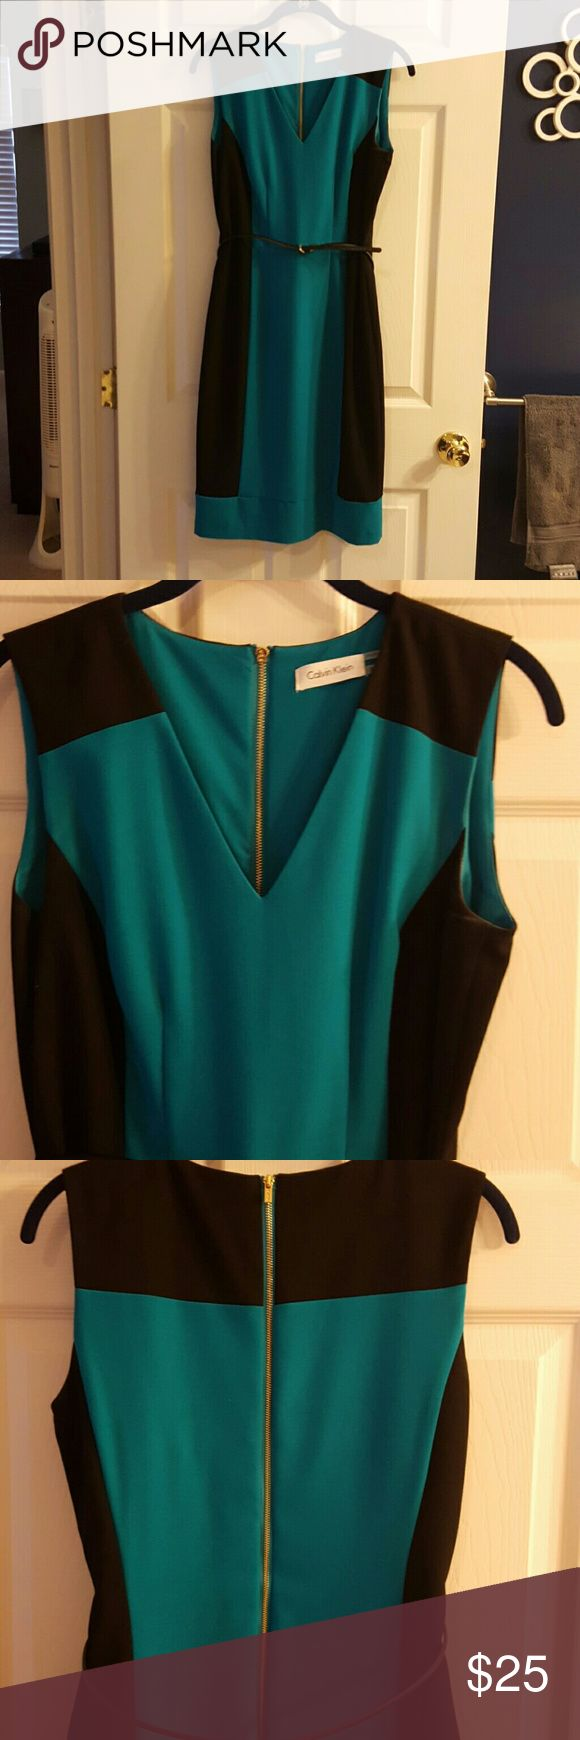 Calvin Klein Teal and Black Color Block dress Sheath dress. Black and teal color block. Sleeveless. Hits at knee. Worn once. Calvin Klein Dresses Mini